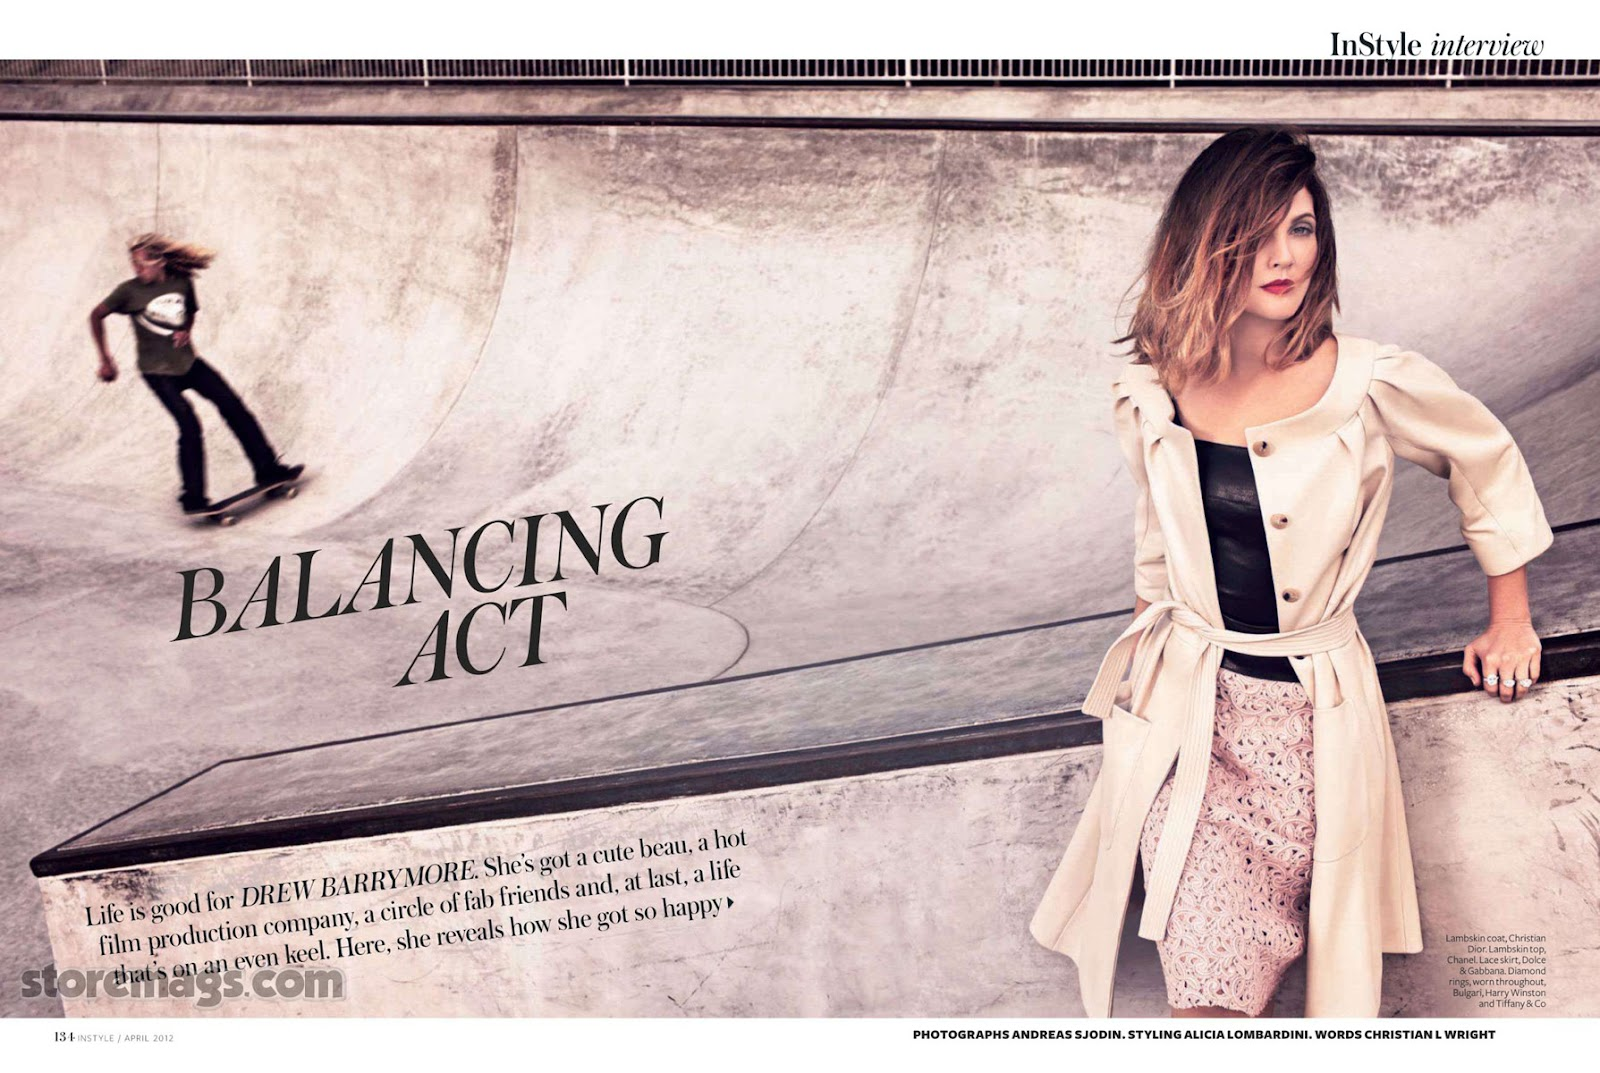 Fashion Style April 2012